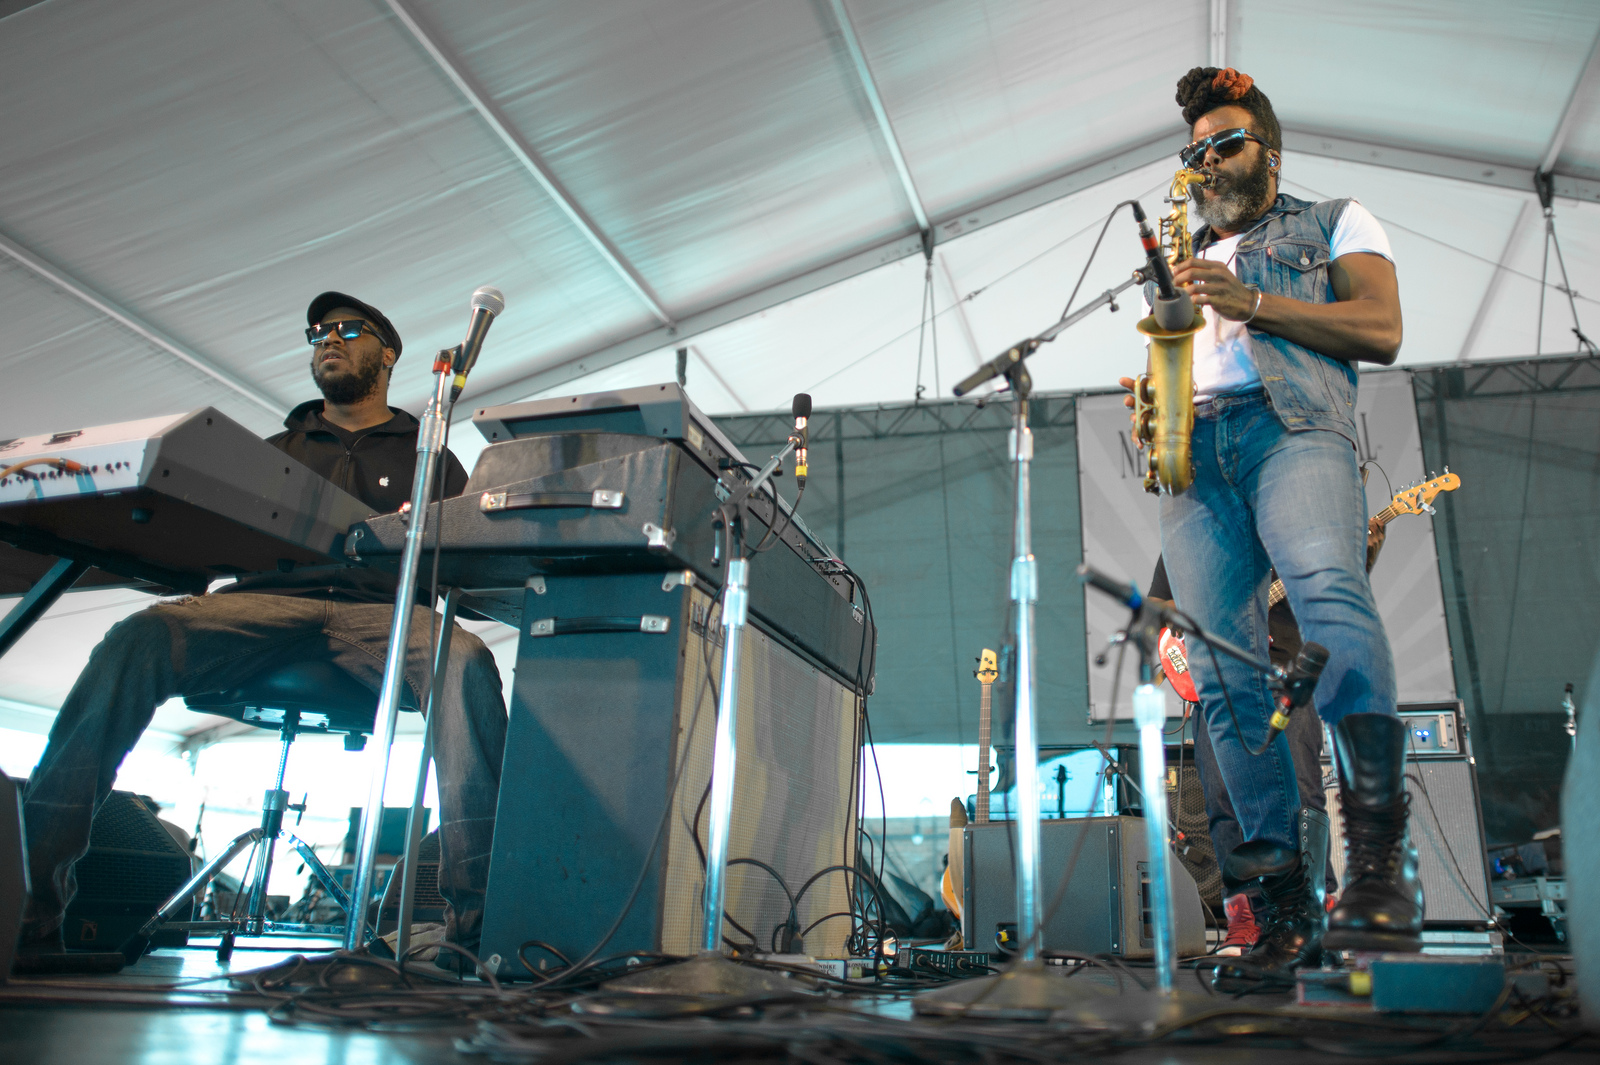 The Robert Glasper Experiment follows a Herbie Hancock tune with a Daft Punk cover -- and there's plenty of vocoder to go around.